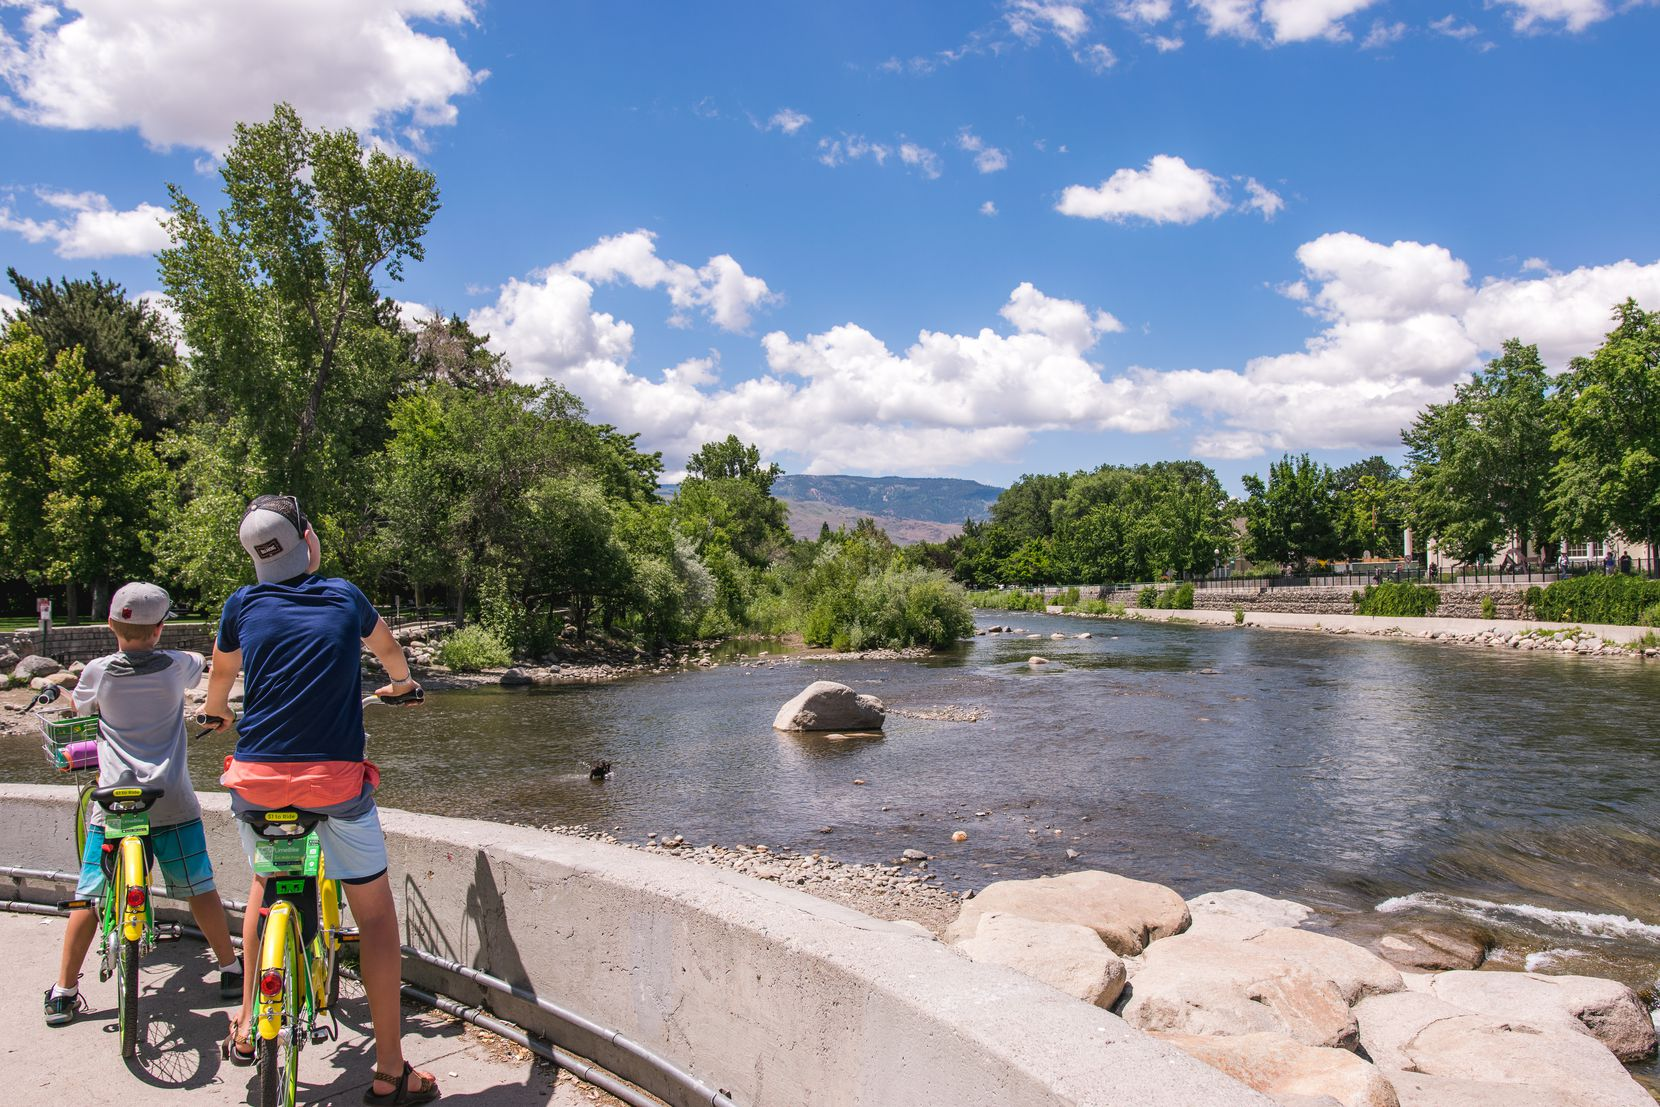 The long distance trails around Lake Tahoe offer majestic lake views for outdoor adventure seekers.